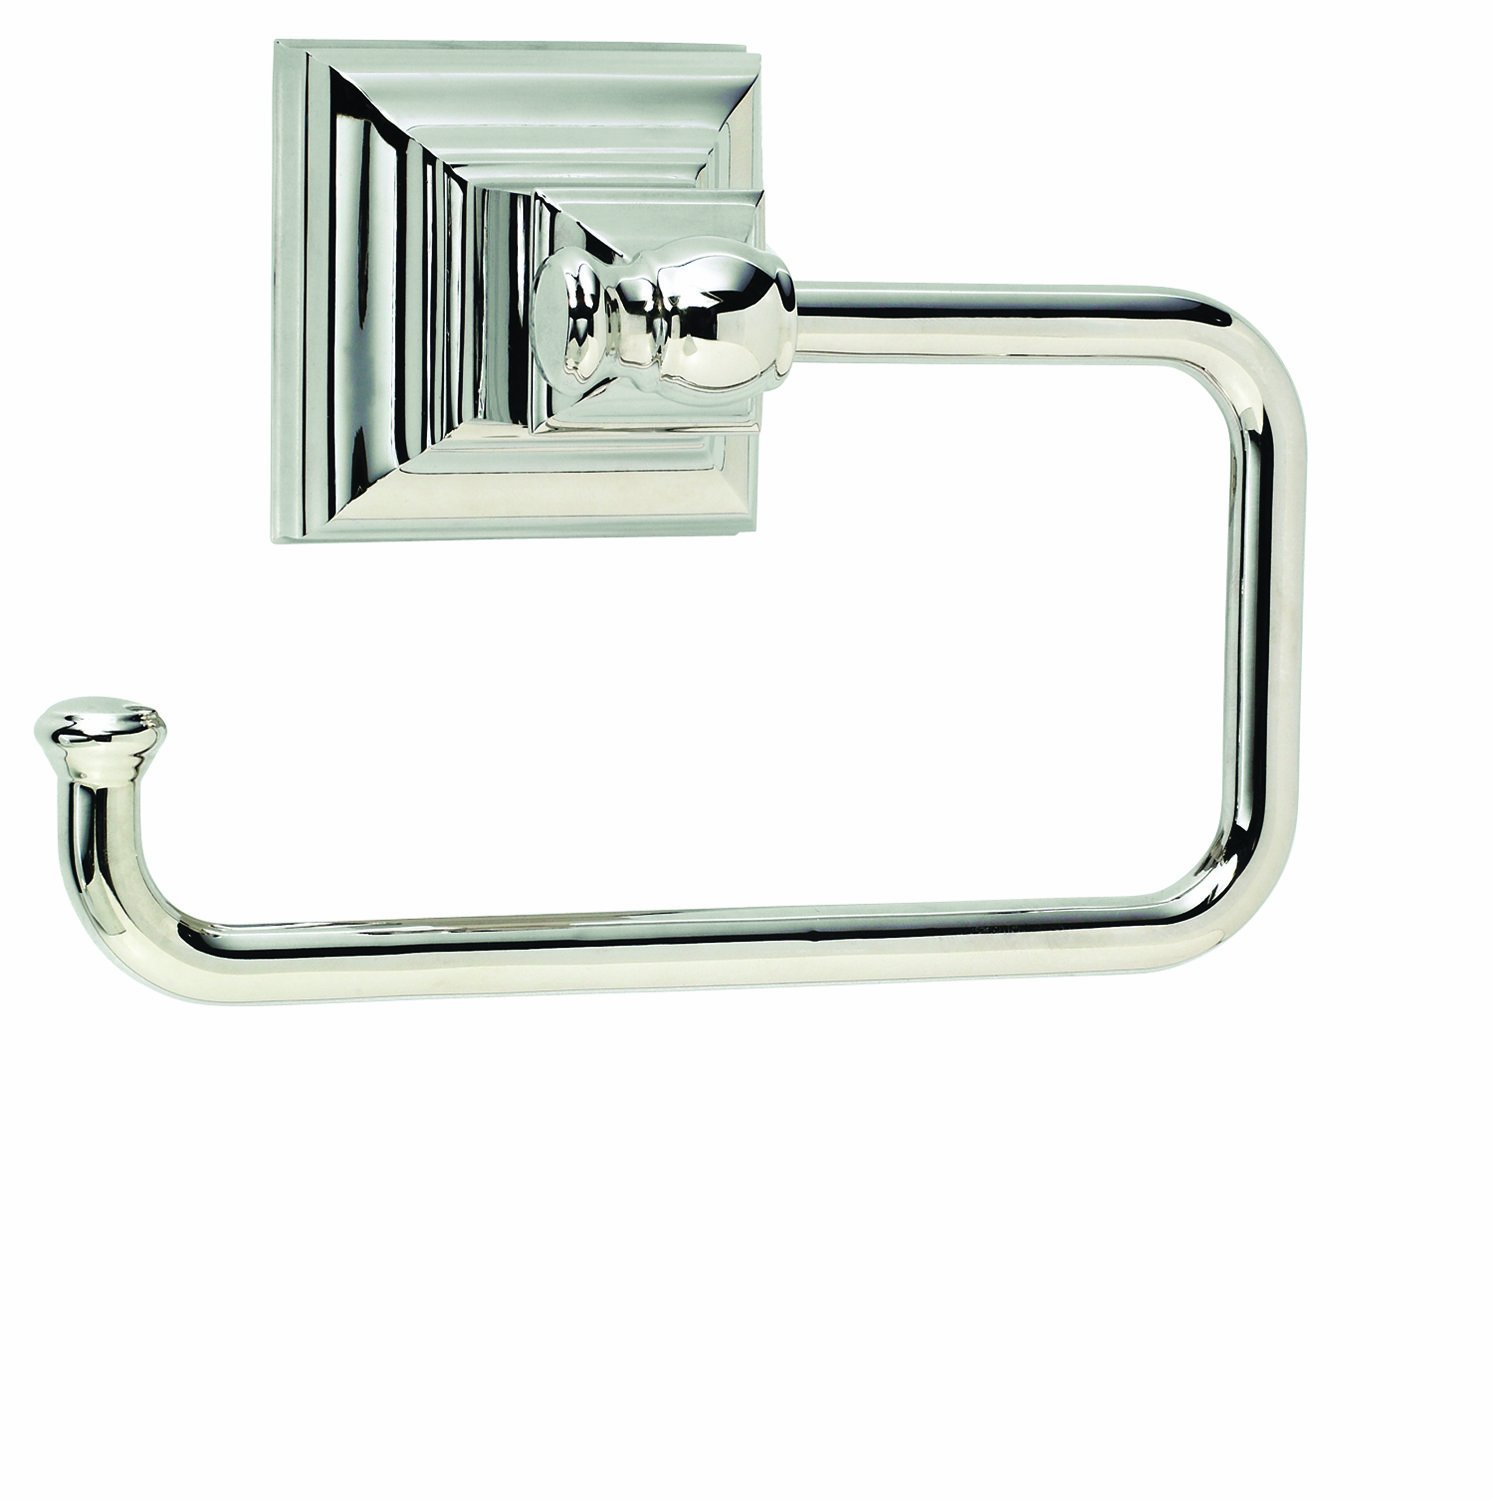 Amerock BH26510PN Markham Single Post Tissue Roll Holder - Polished Nickel lovely